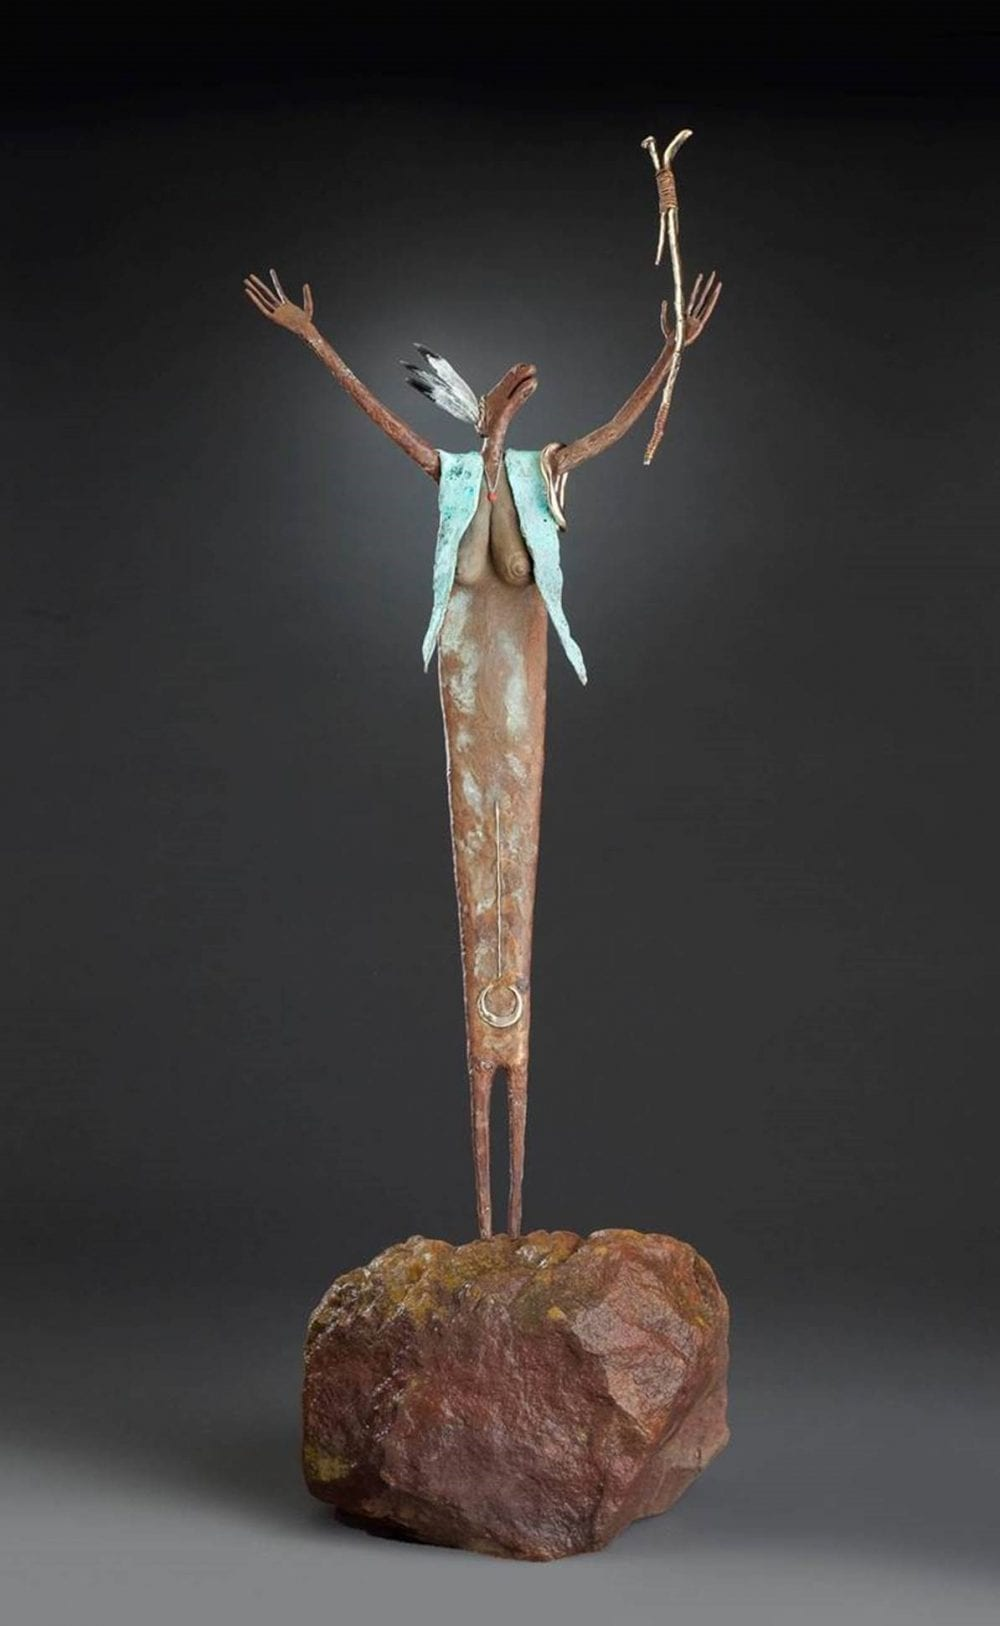 Maker of Strong Medicine | Bill Worrell | Sculpture-Exposures International Gallery of Fine Art - Sedona AZ